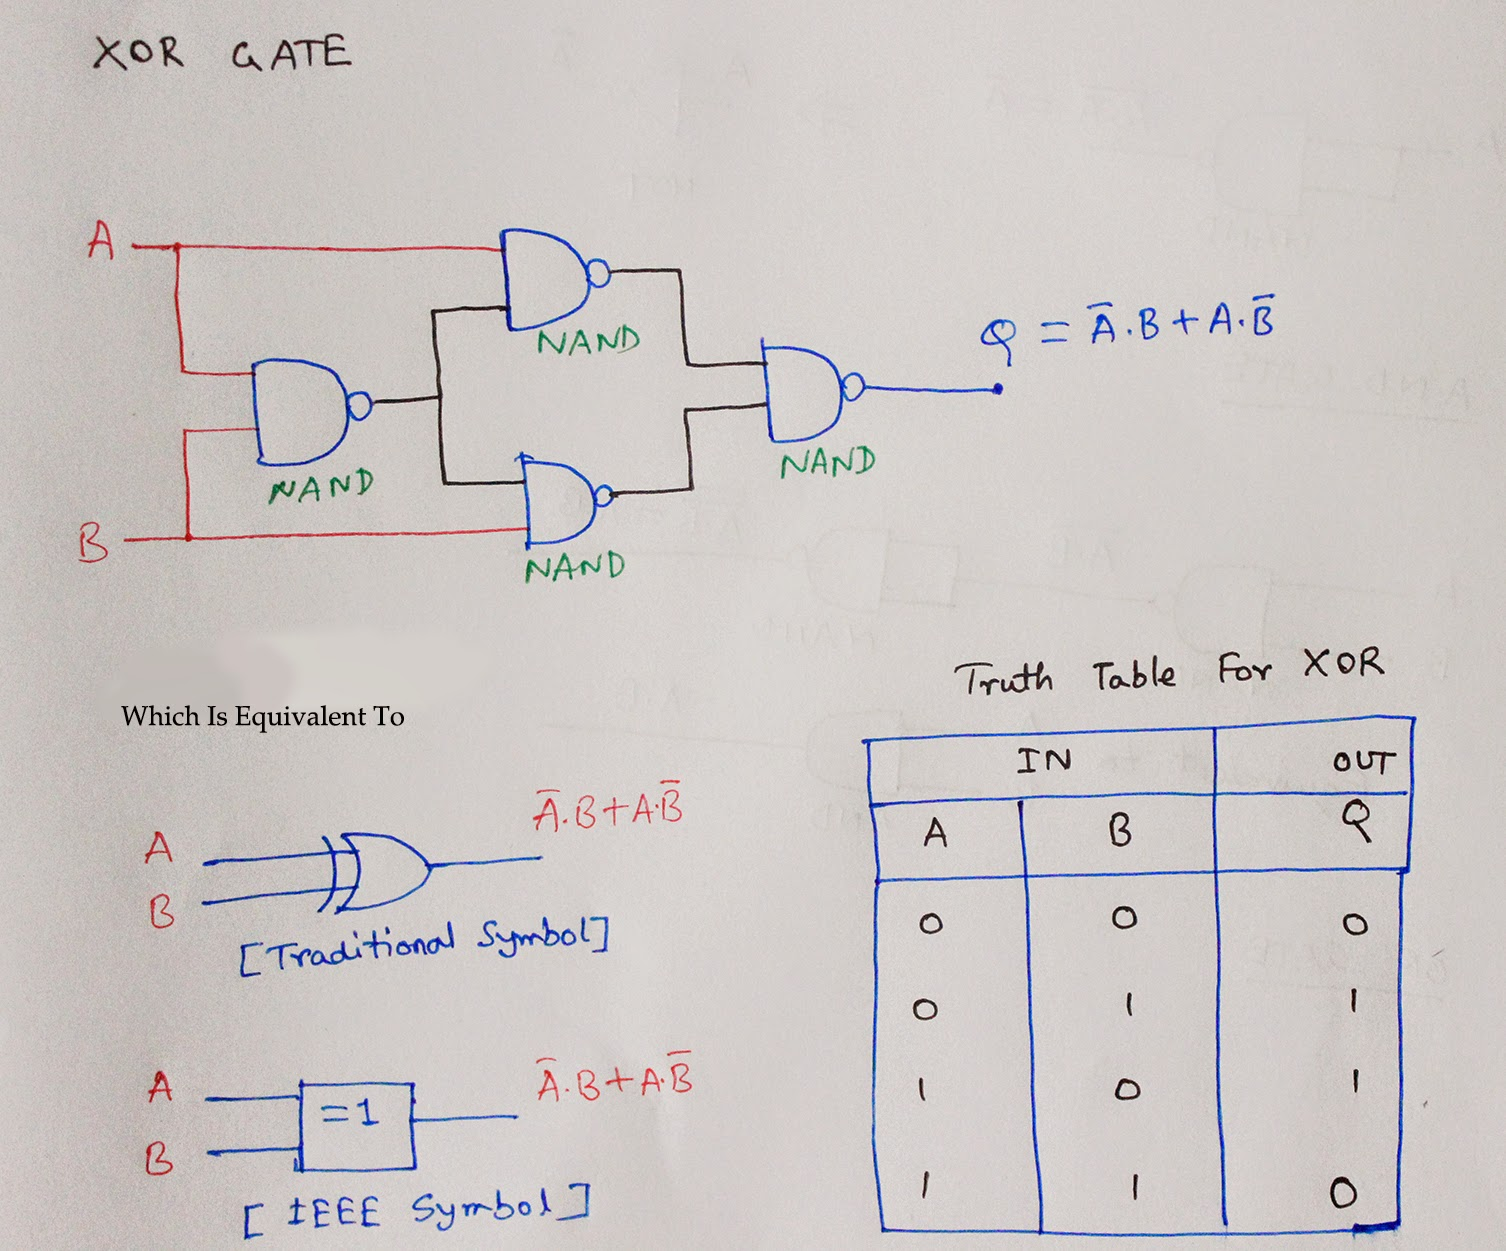 Nand Gate Circuit Diagram Using Transistor The Structural Wiring Of A Xnor Led Diagrams Level 3d